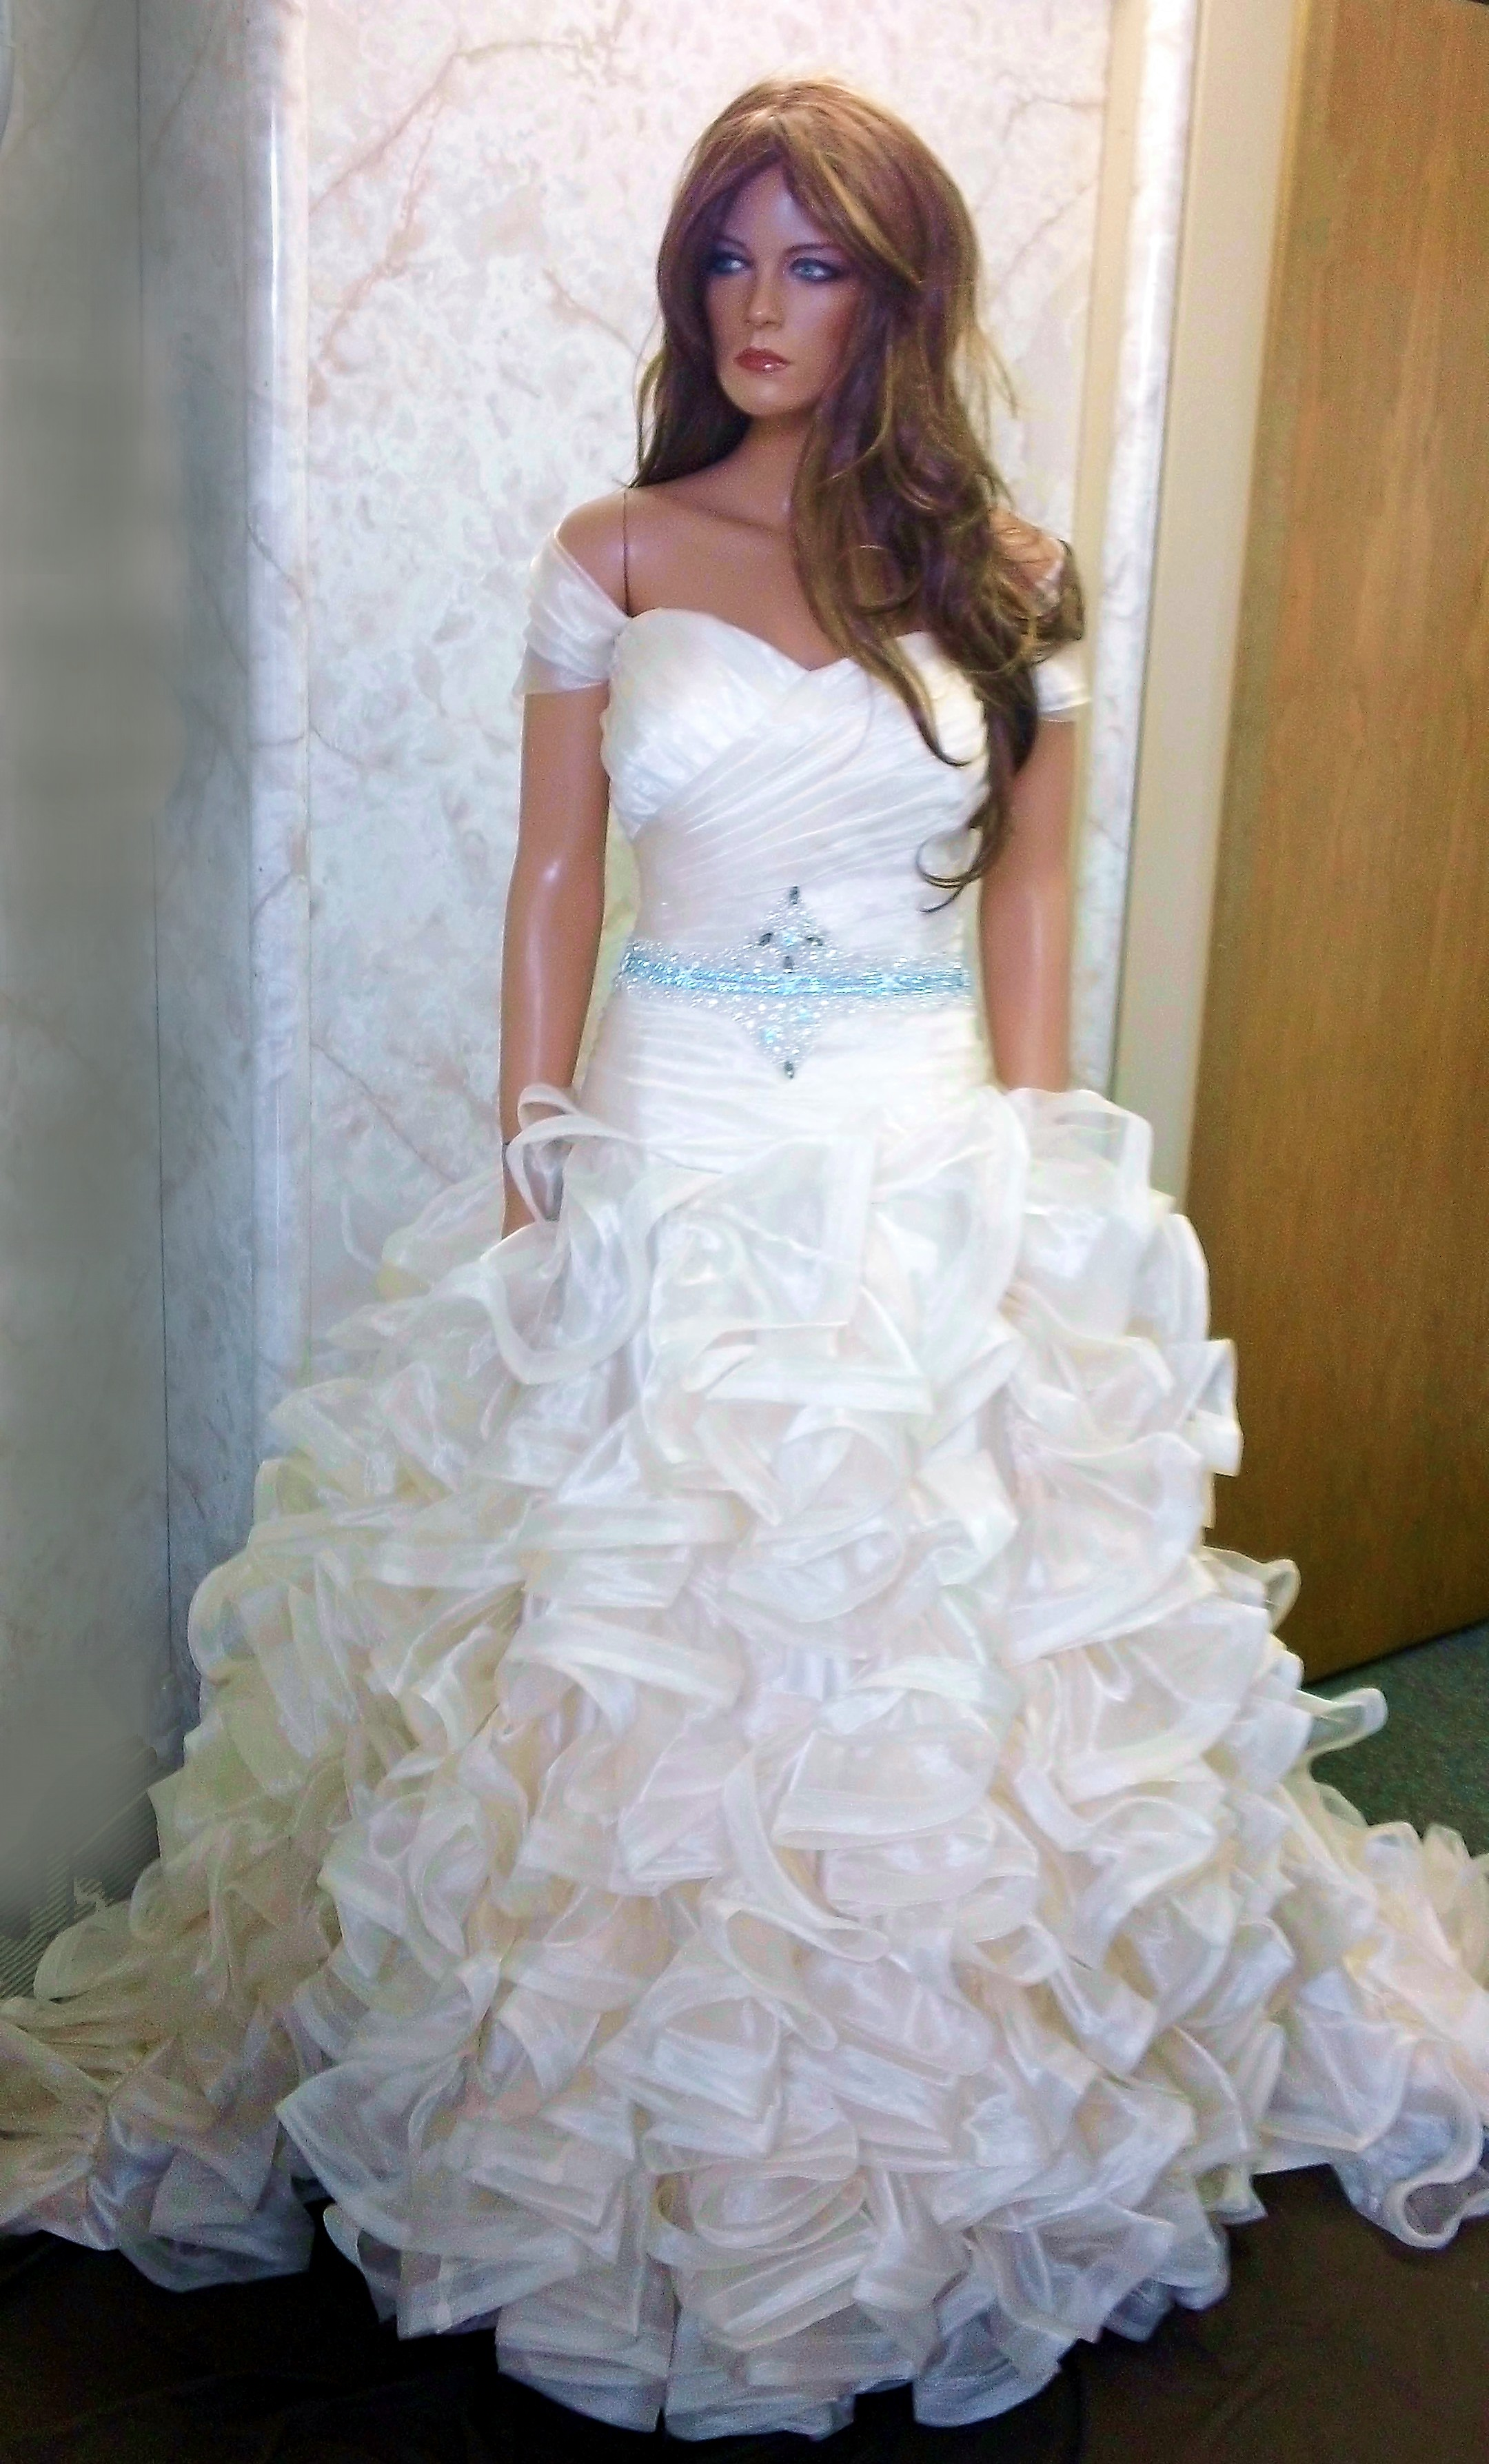 brides choice redesigned wedding gowns.